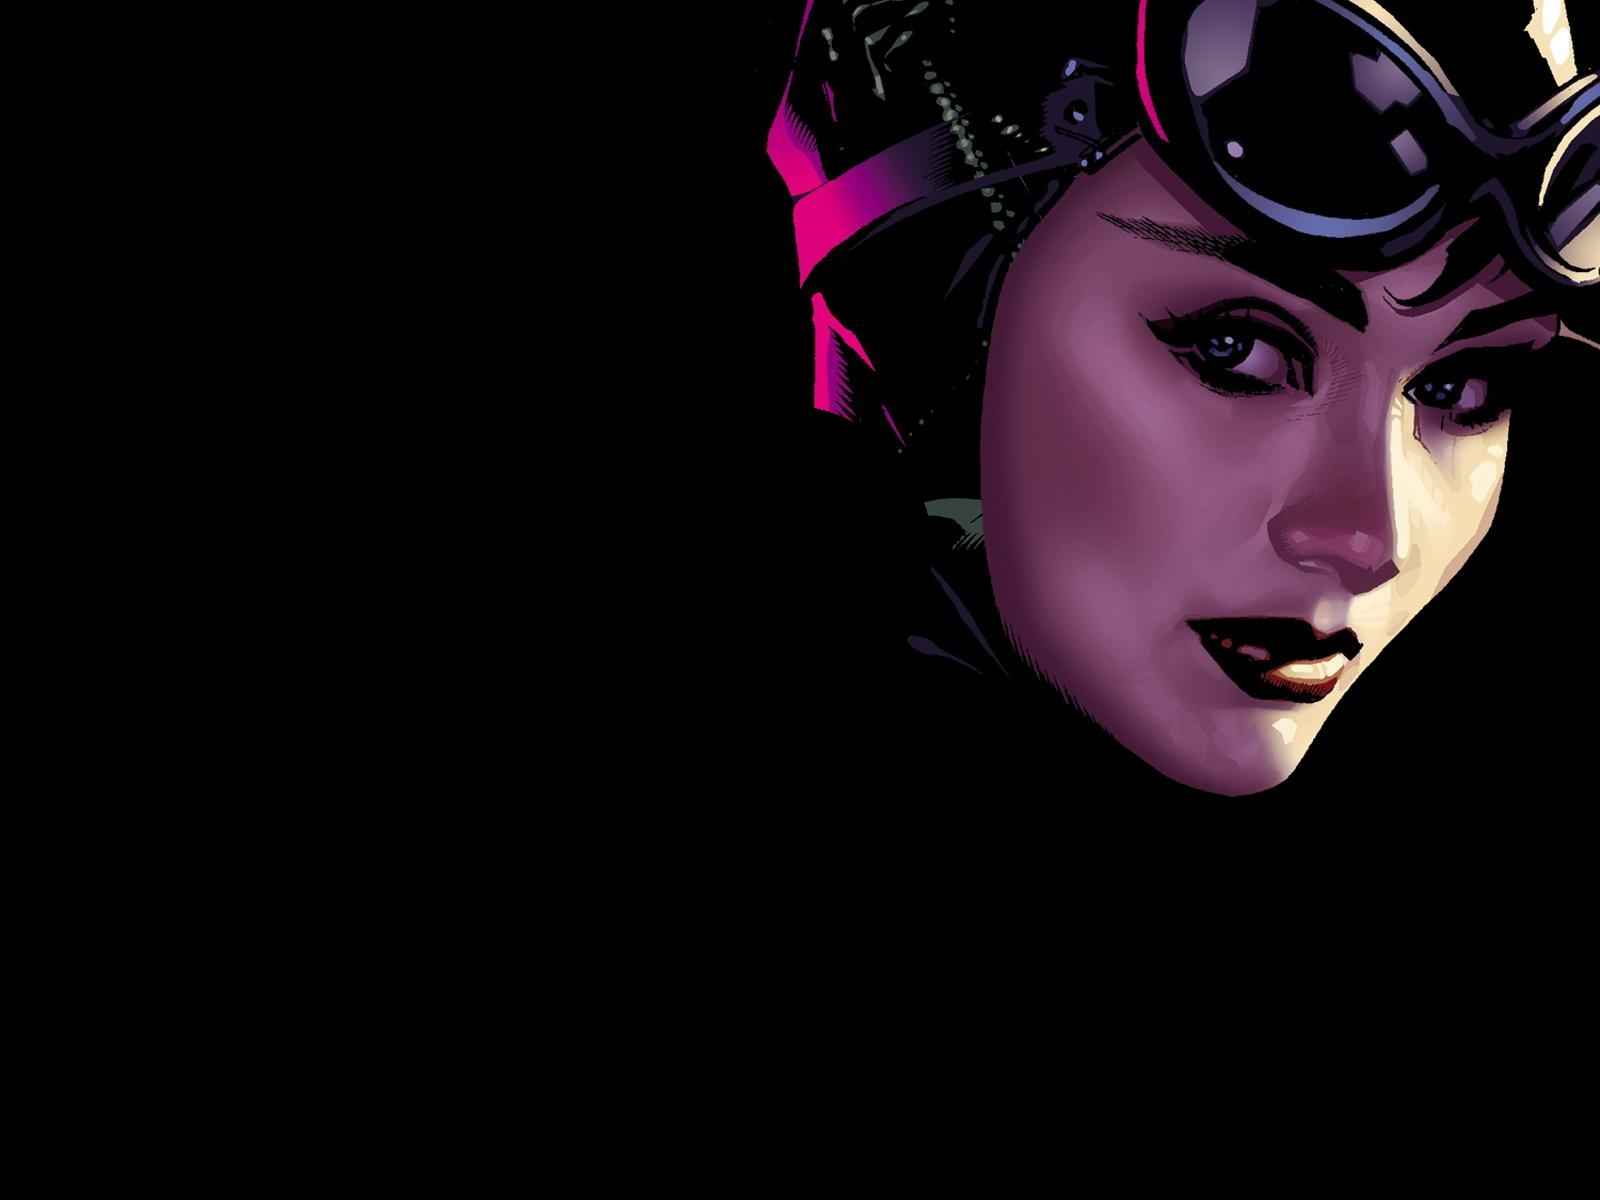 Catwoman Computer Wallpapers Desktop Backgrounds 1600x1200 ID 1600x1200